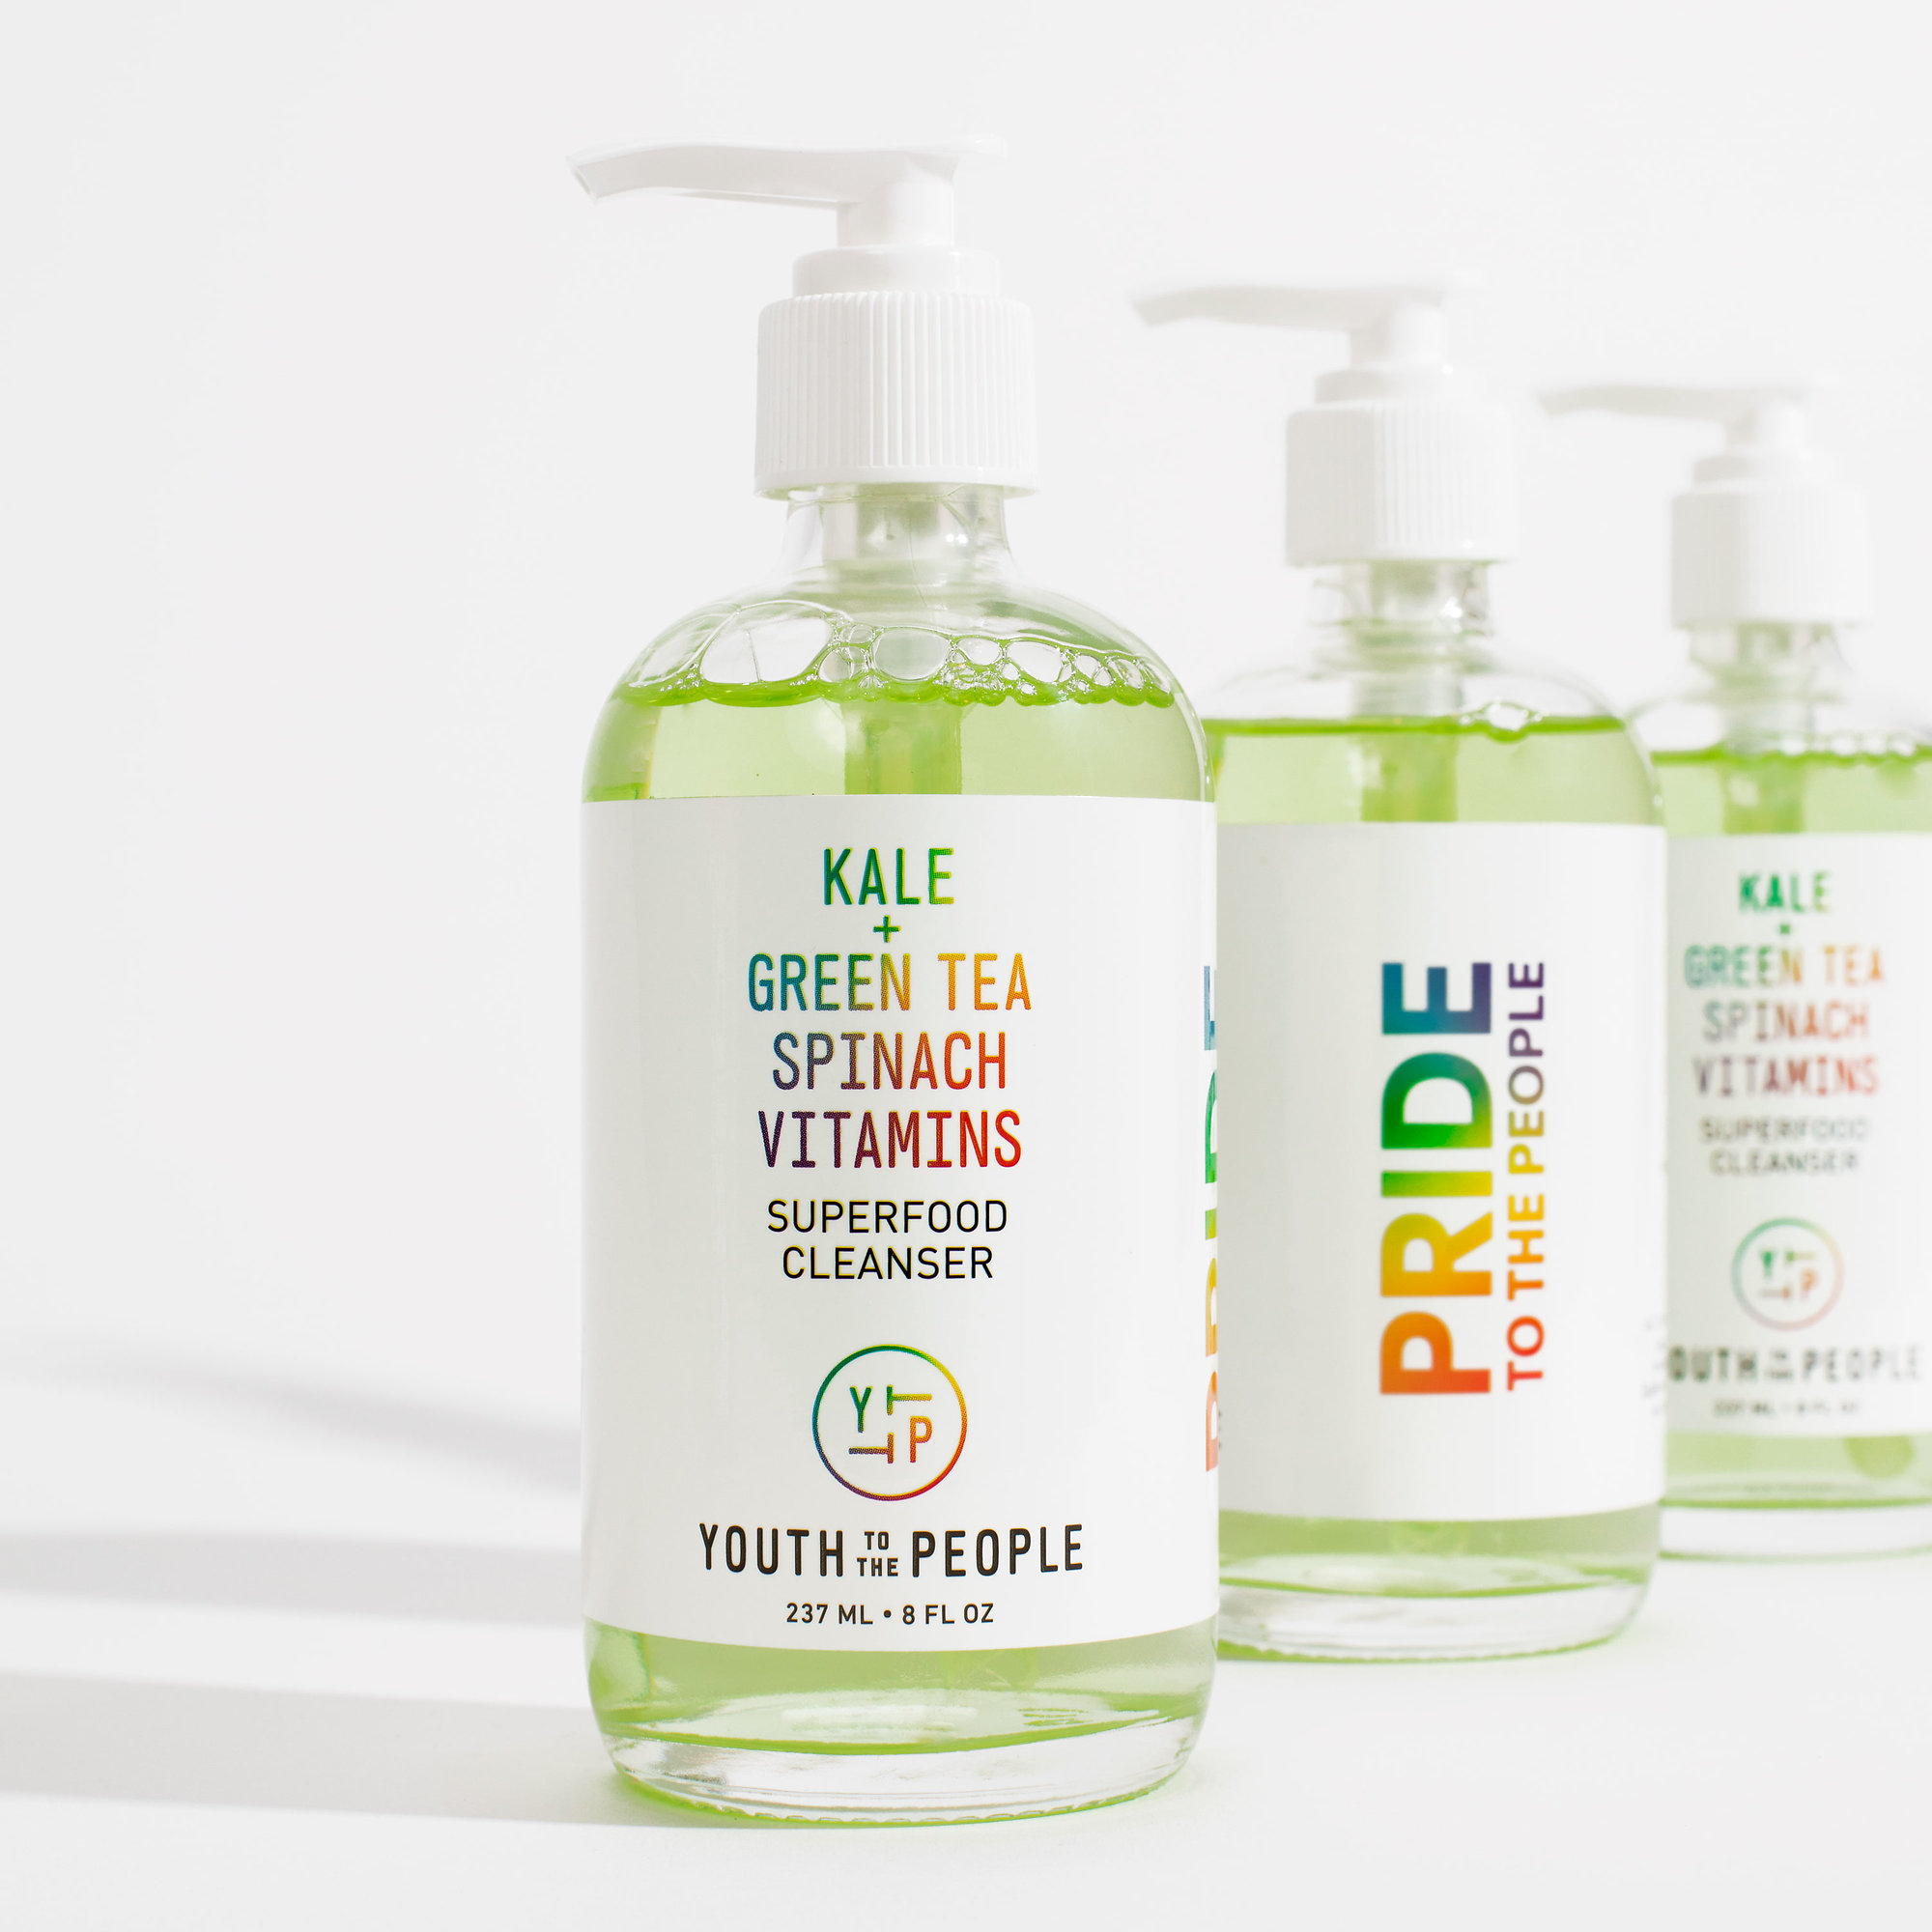 Youth To The People - Youth to the People has long been a disrupter in the skincare game. Harnessing superfood ingredients in a sustainable way to cater to the on-the-go lifestyle of millenials. It comes as no surprise that the brand would support some of the generation's idealogies.100% of profits (Up to $50,000) from the Limited Edition Superfood Cleanser ($36) are donated to GLSEN, an organization on a mission to provide educational environments that are inclusive to LGBT students.